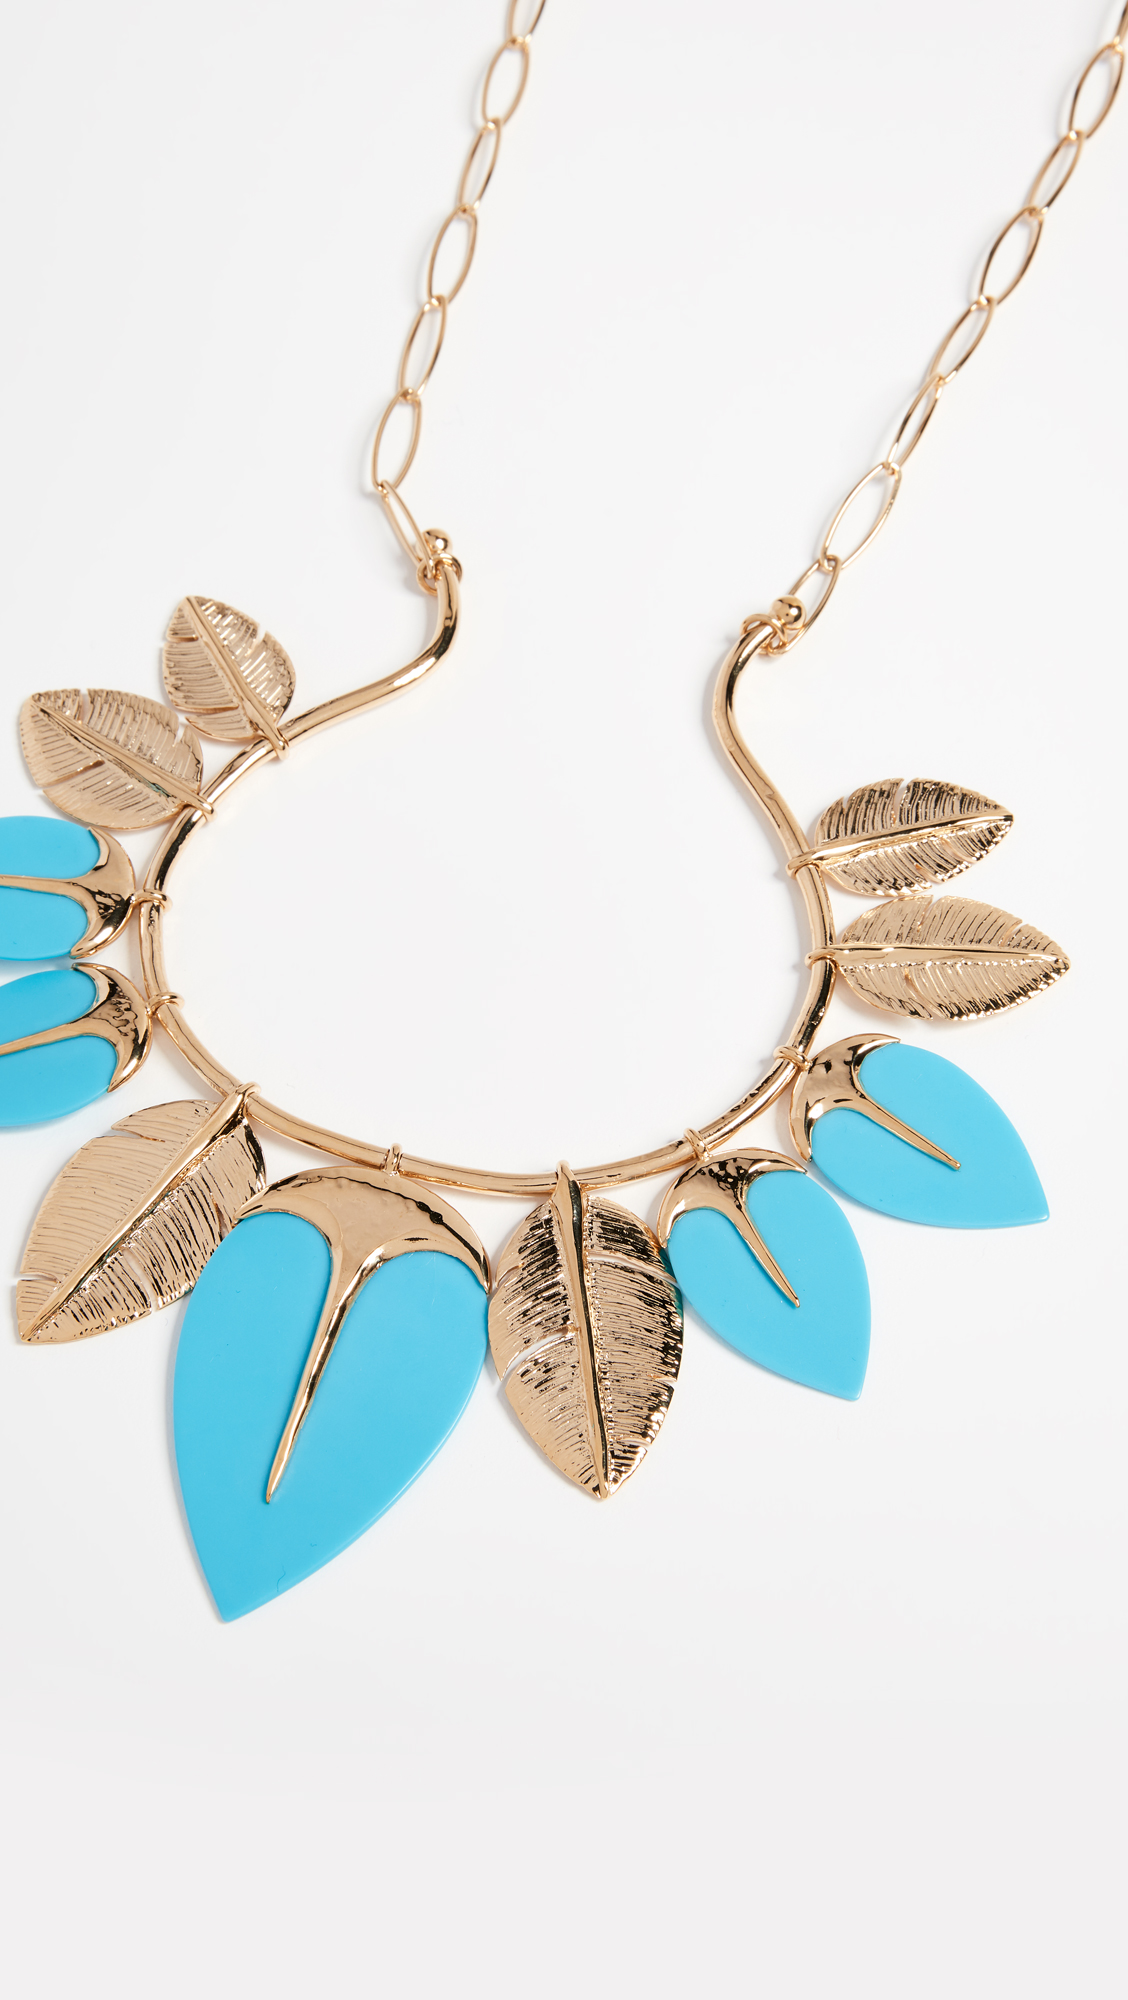 Talitha Long Necklace in Turquoise 18K Gold-Plated Brass Aur</ototo></div>                                   <span></span>                               </div>             <div>                                     <div>                                             <div>                                                     <p>                                                           <small>                                 Buy direct SAVE! No Sales Tax to US Residents! FREE Priority shipping on US orders over $100!                             </small>                                                       </p>                                                 </div>                                         </div>                                     <div>                                             <div>                                                     <ul>                                                             <li>                                                               </li>                                                             <li>                                                                   <a href=